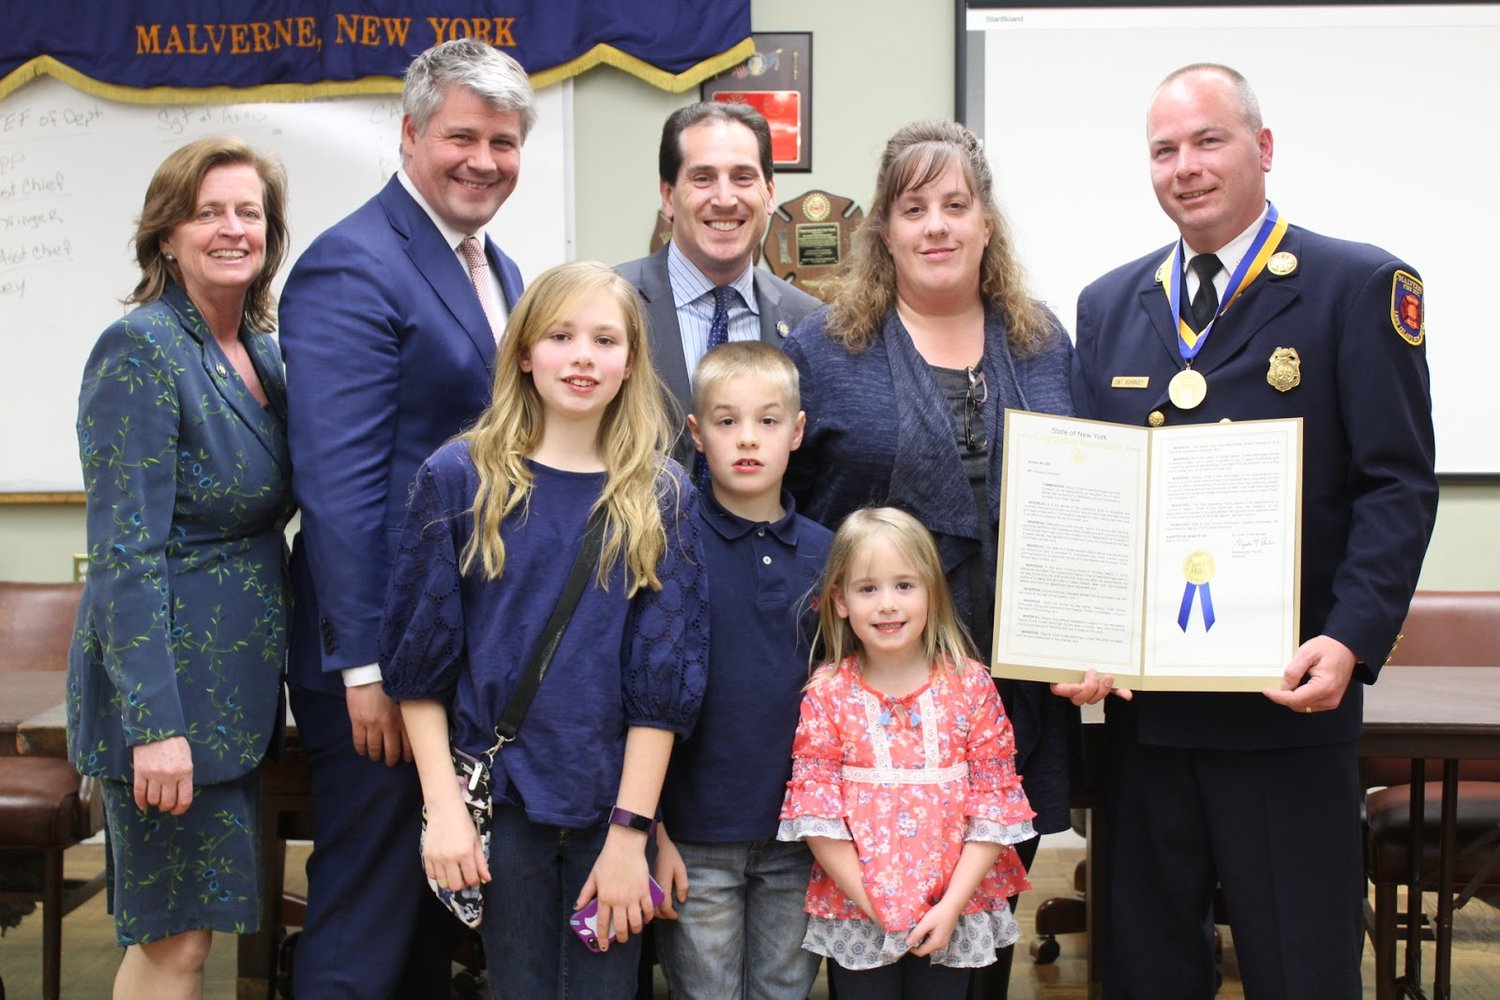 Malverne Fire Department Second Deputy Chief Ernest Bohringer, far right, with his wife, Sande; his children, Mackayla, Justin and Gabriella; along with State Sen. Todd Kaminsky, center, State Assemblywoman Judy Griffin, far left, and Malverne Mayor Keith Corbett.